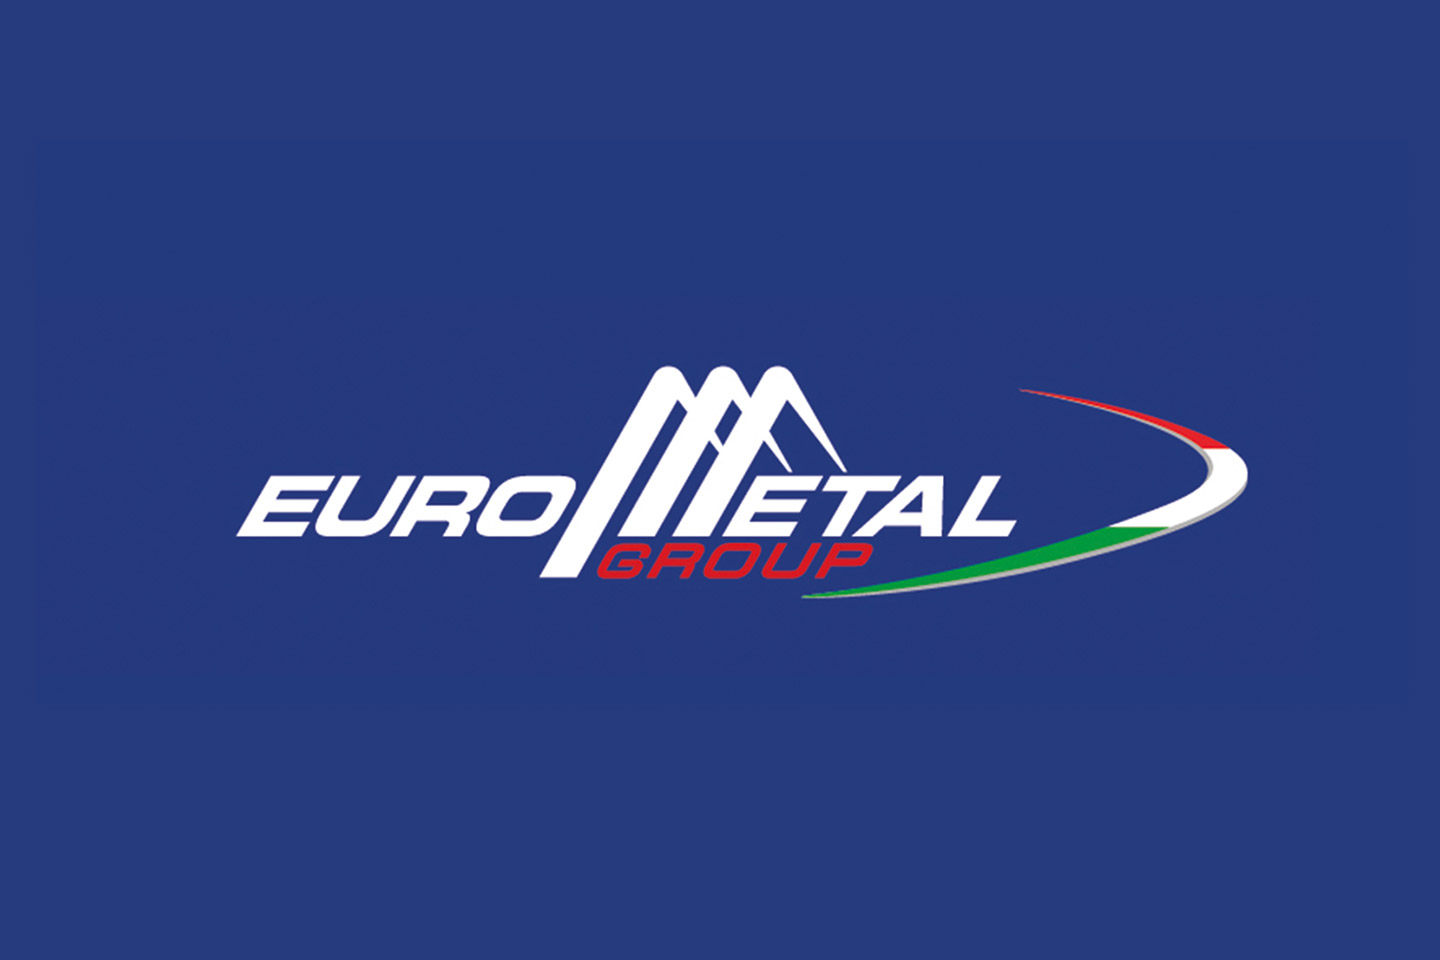 eurometal group equitazione